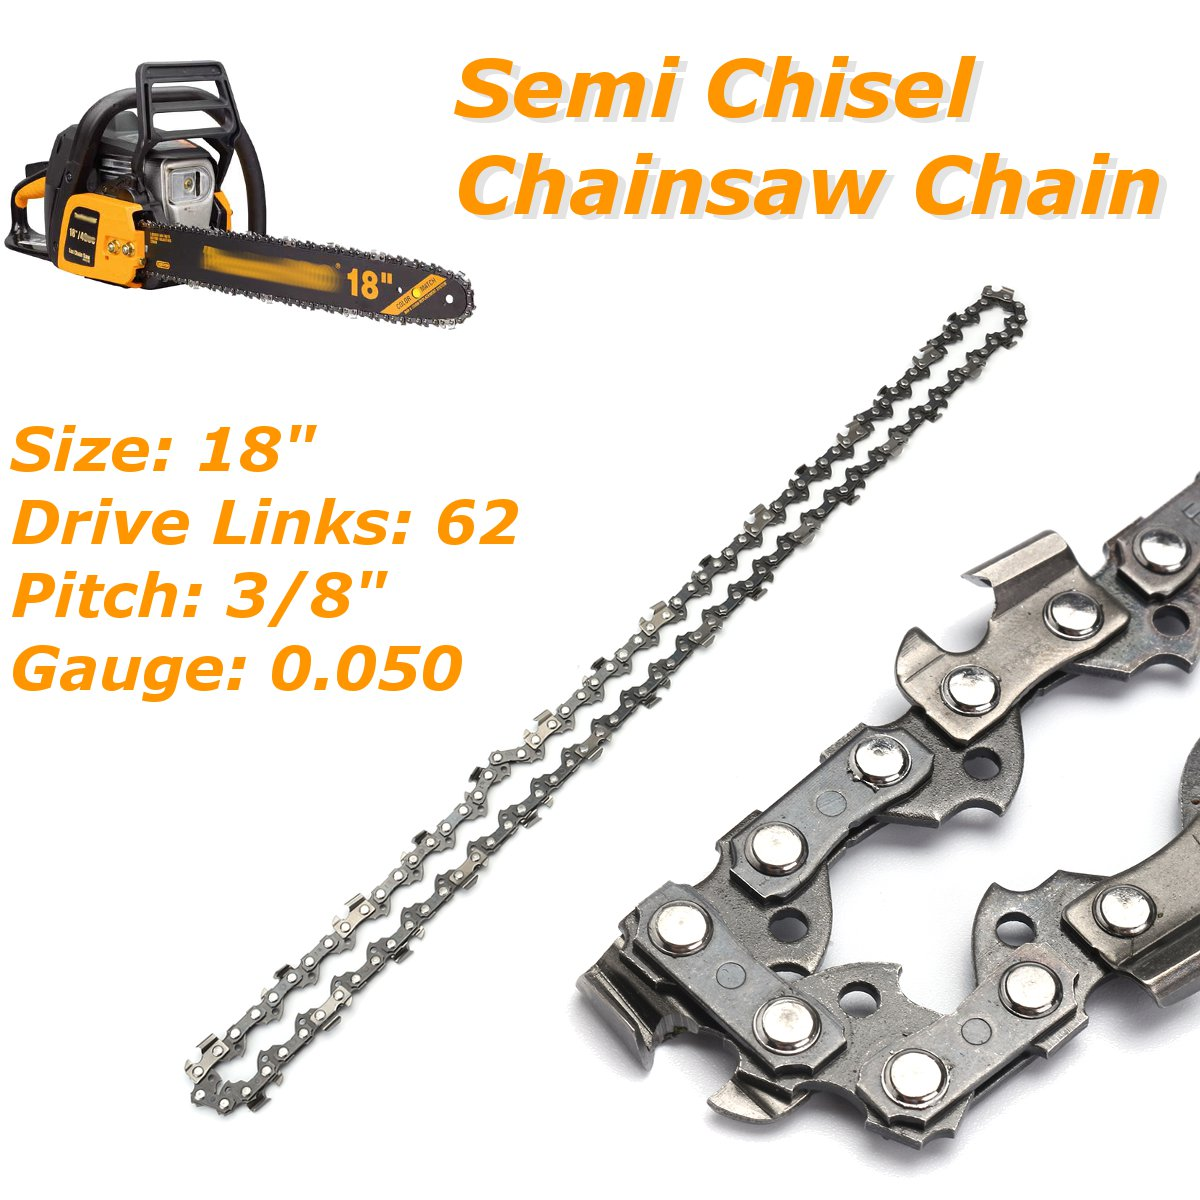 18 Inch 3/8 Semi Chisel Chainsaw Chain Blade For Poulan Homelite Lectric Saw For Homelite Poulan Pro And Other Models